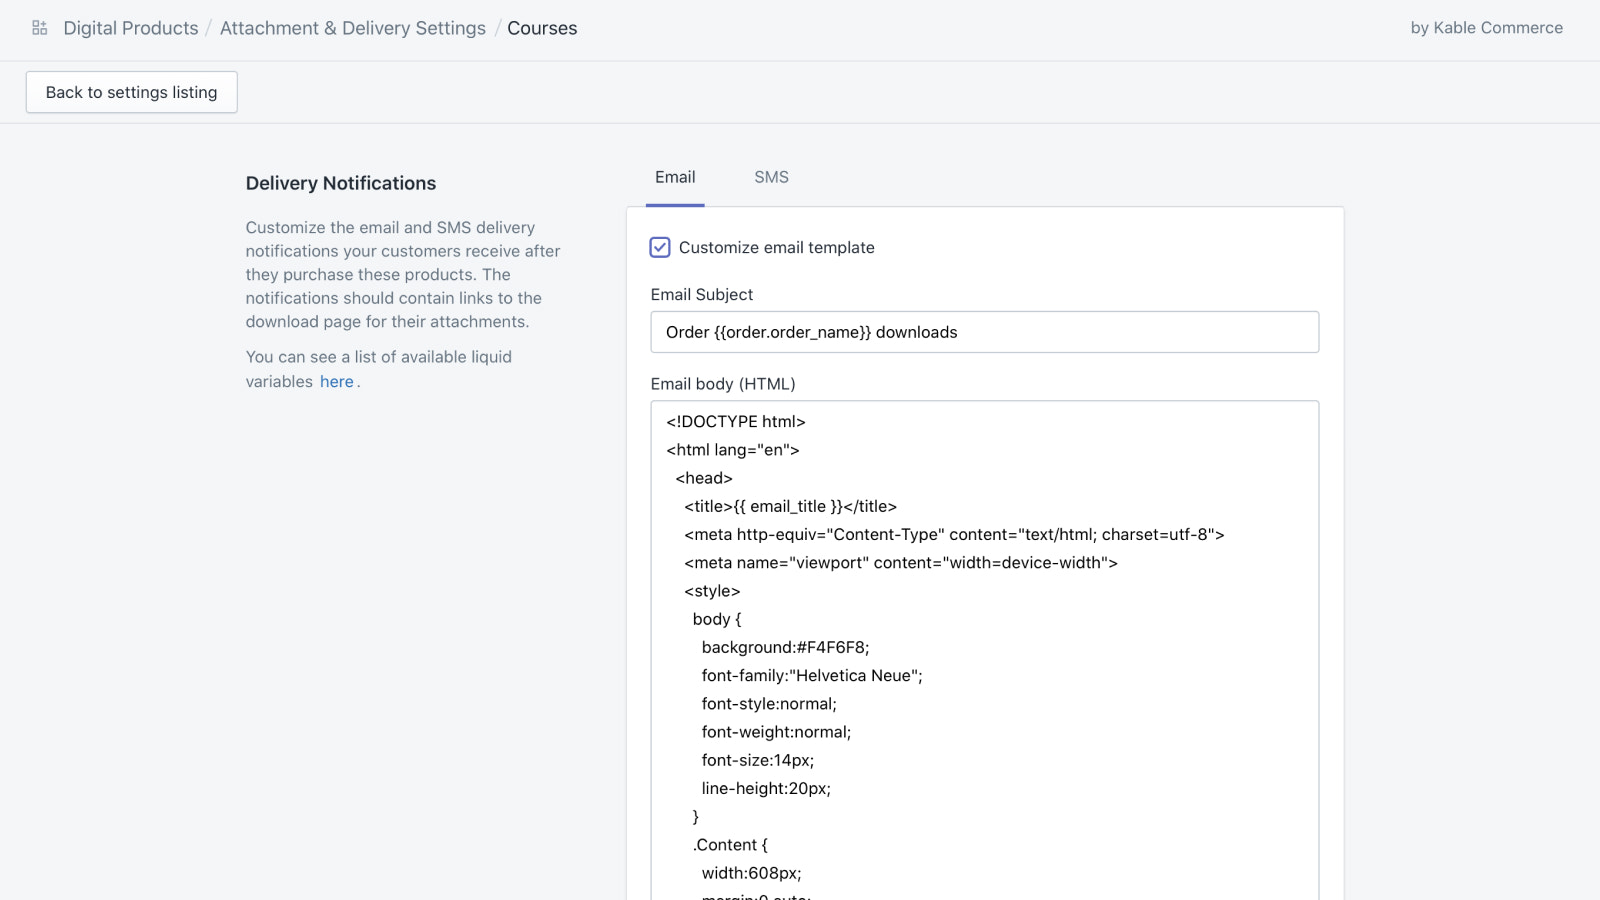 Digital Products Settings: Custom Email/SMS